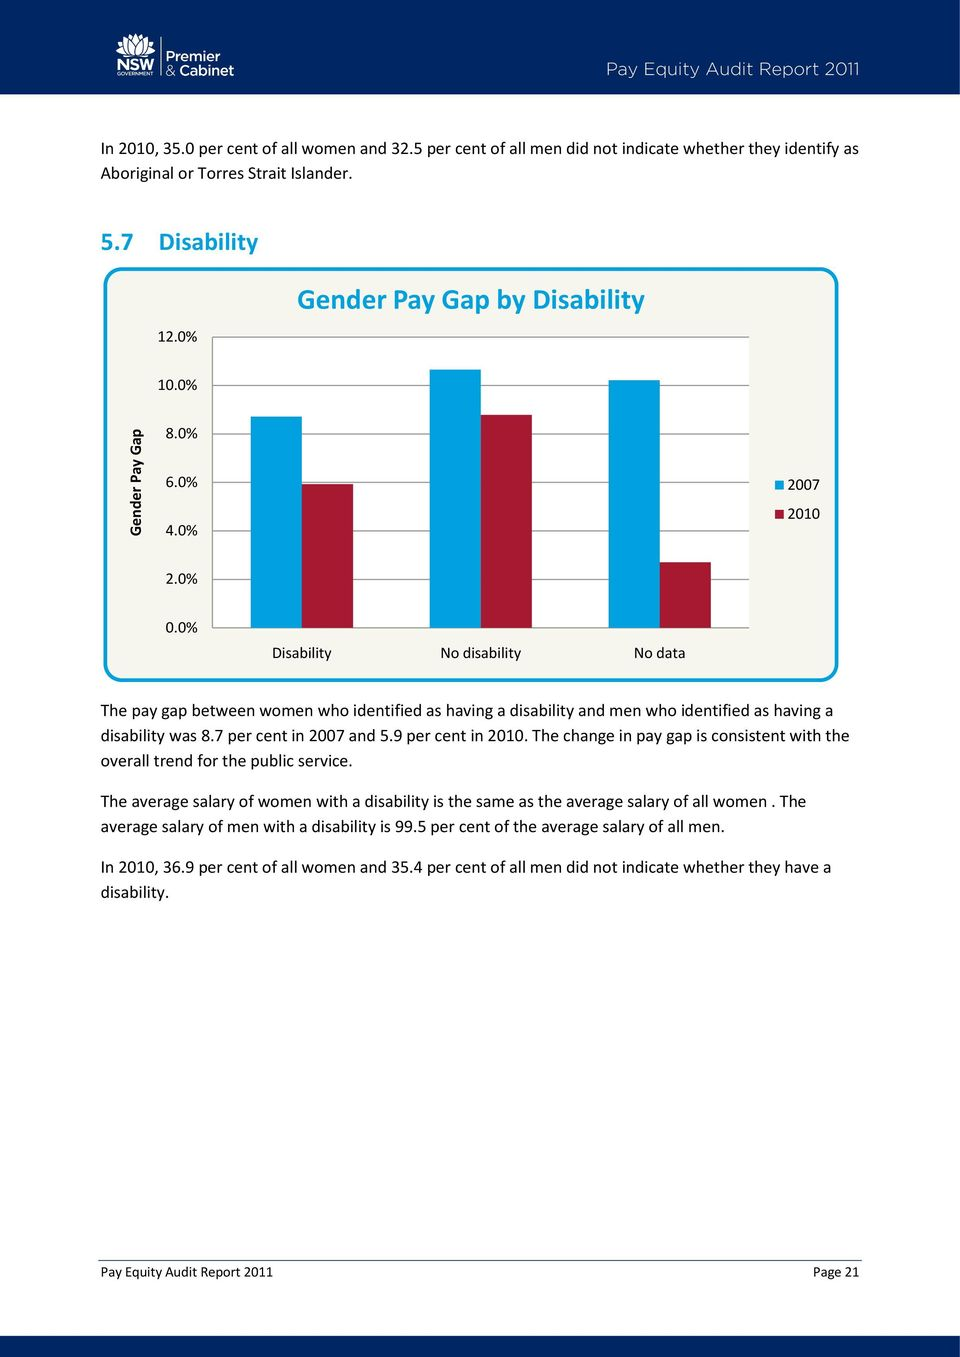 0% Disability No disability No data The pay gap between women who identified as having a disability and men who identified as having a disability was 8.7 per cent in 2007 and 5.9 per cent in 2010.